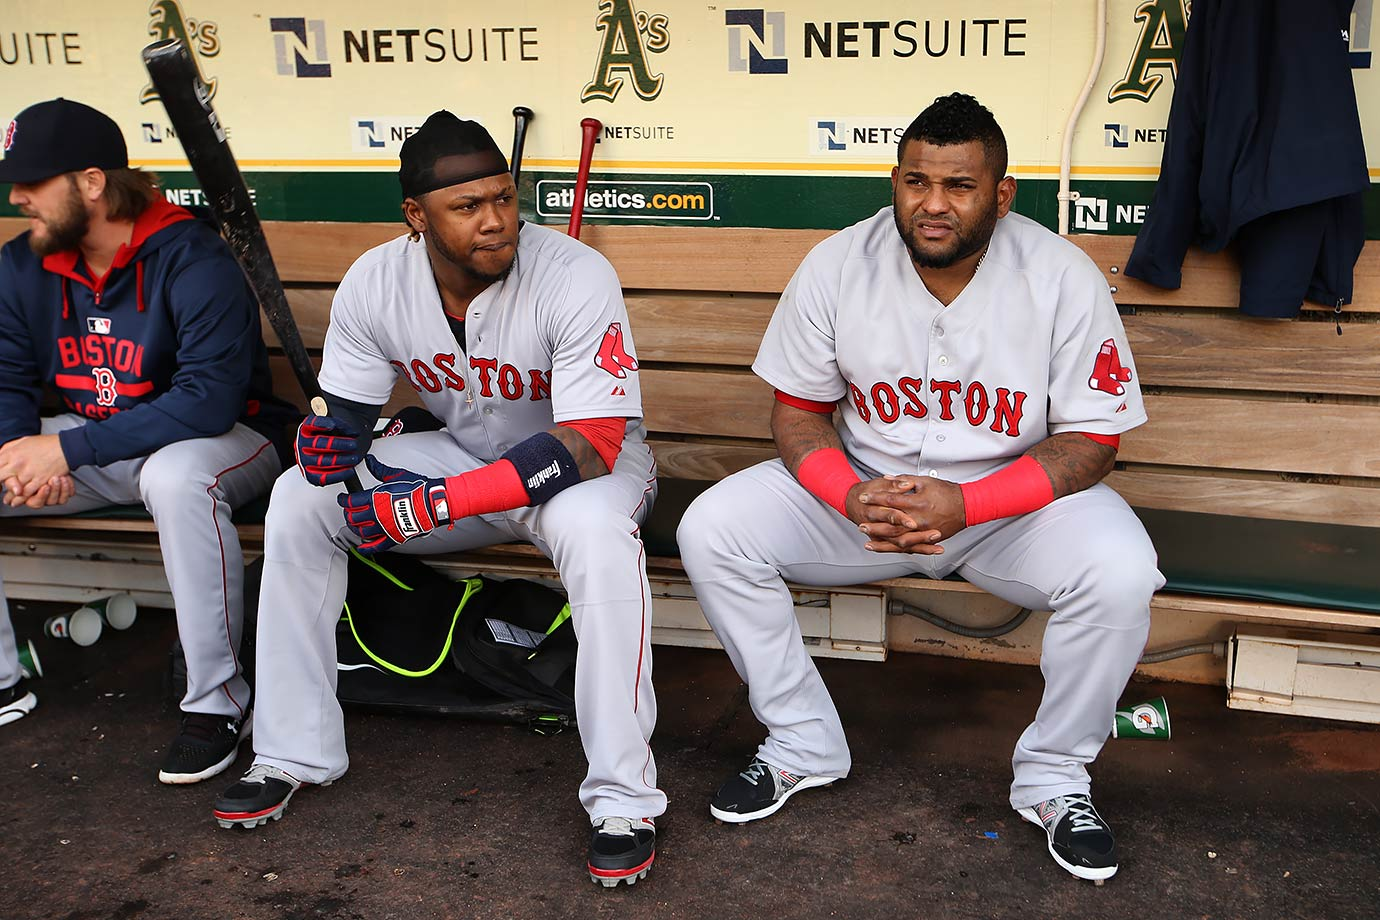 The Sox had high hopes when they signed Pablo Sandoval and Hanley Ramirez to contracts worth a combined $183 million. Not even rookie sensations Mookie Betts and Xander Bogaerts could save them from a last-place finish.